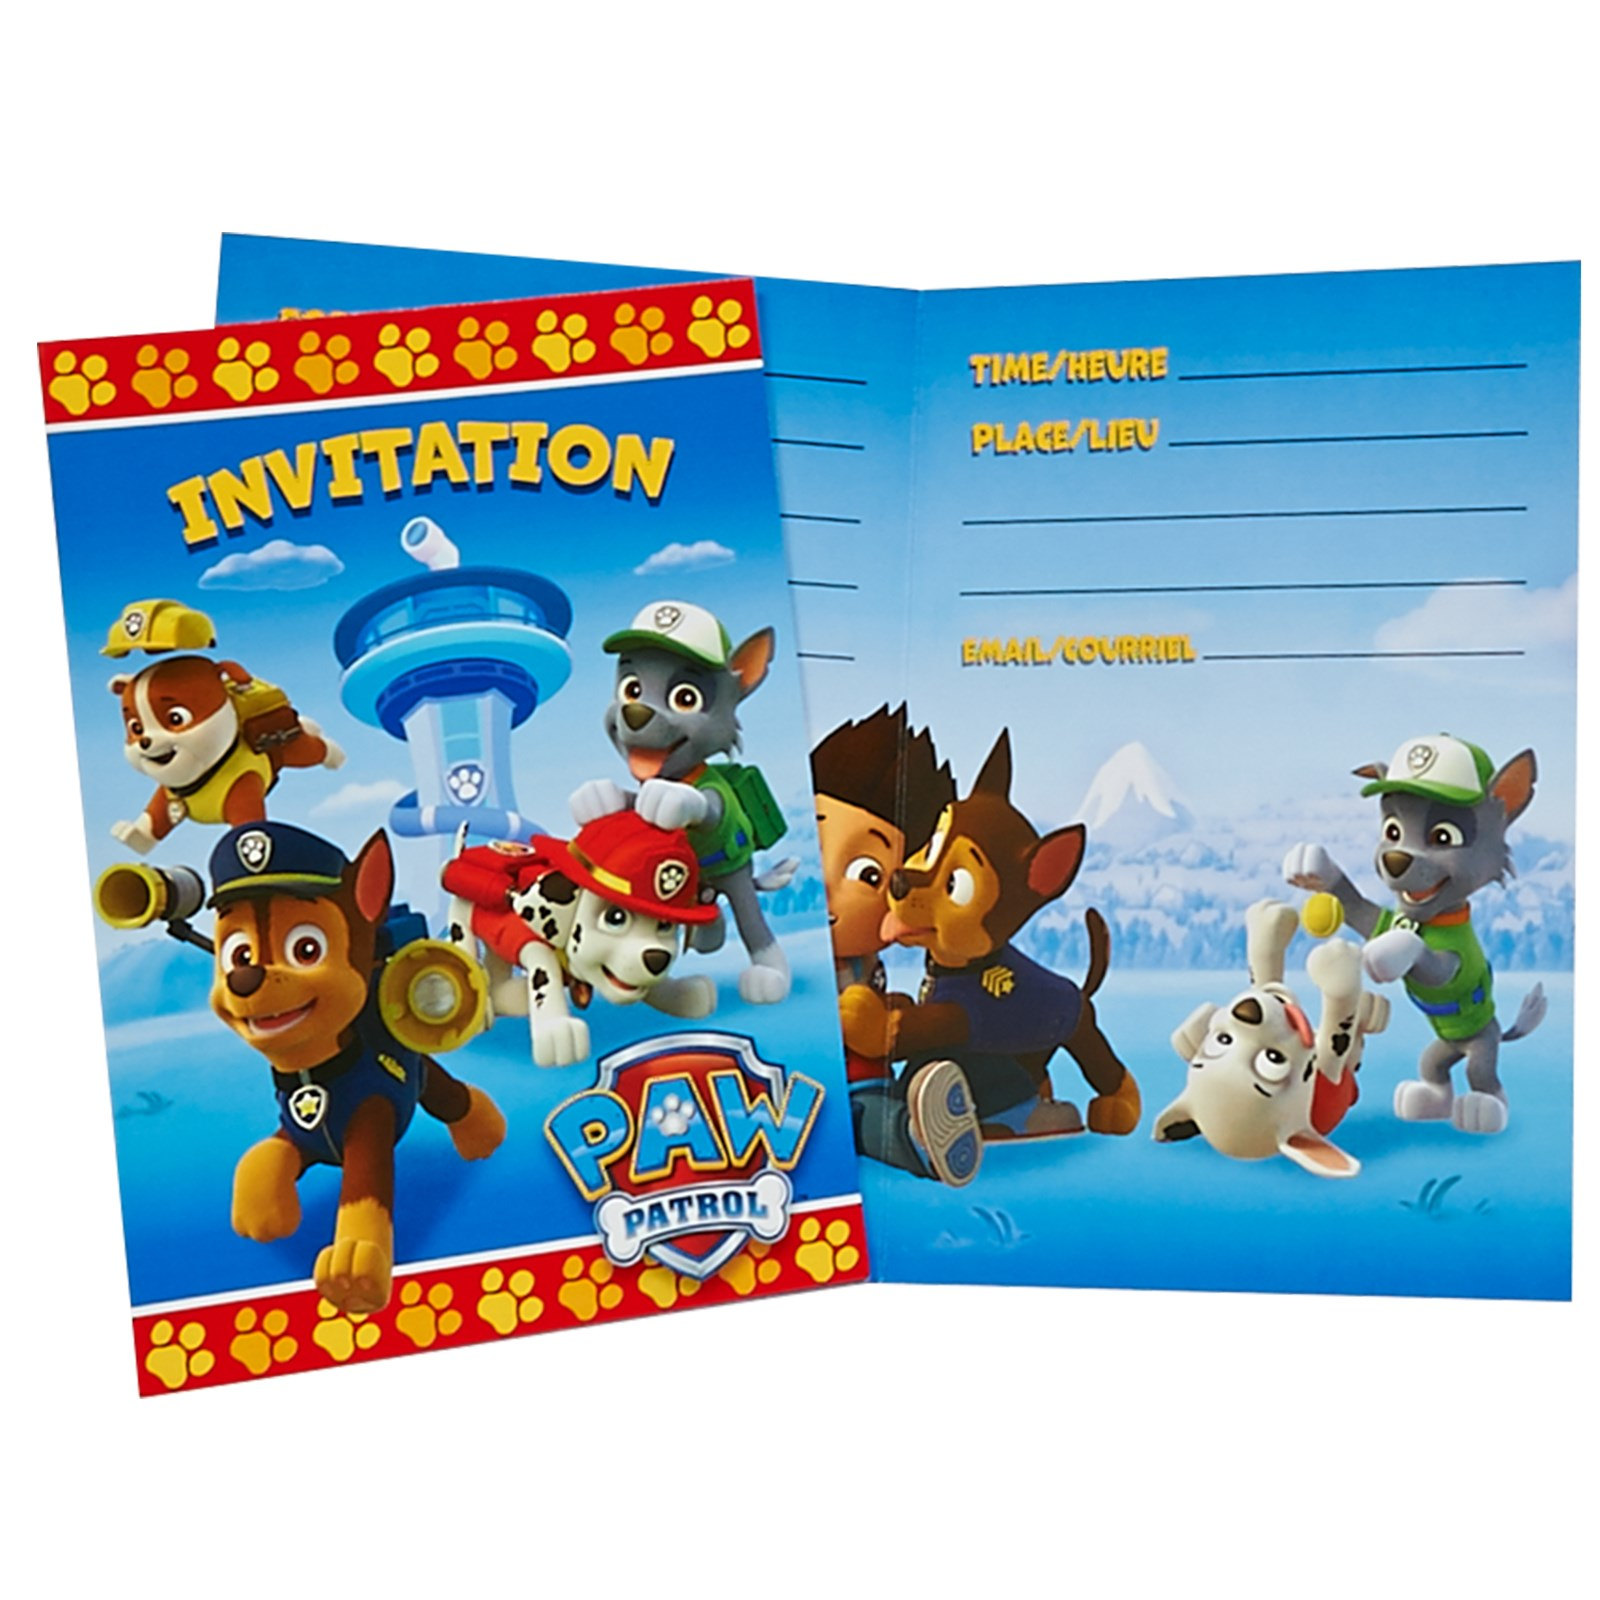 PAW Patrol Invitations (8) How to Throw the Perfect PAW Patrol Birthday Party